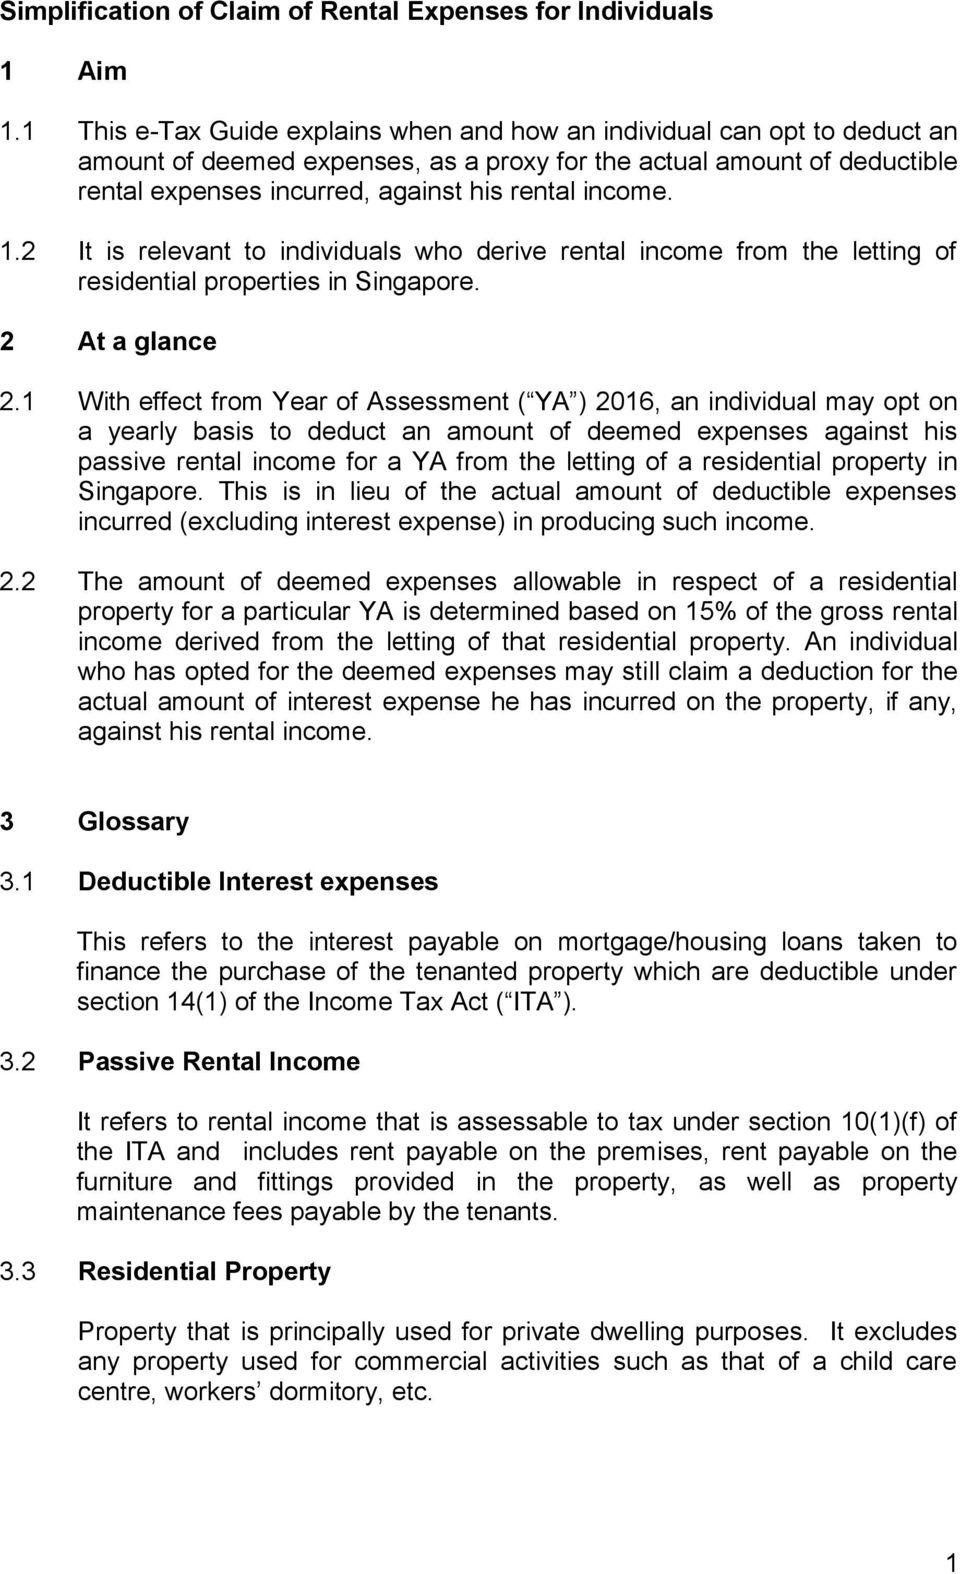 income. 1.2 It is relevant to individuals who derive rental income from the letting of residential properties in Singapore. 2 At a glance 2.